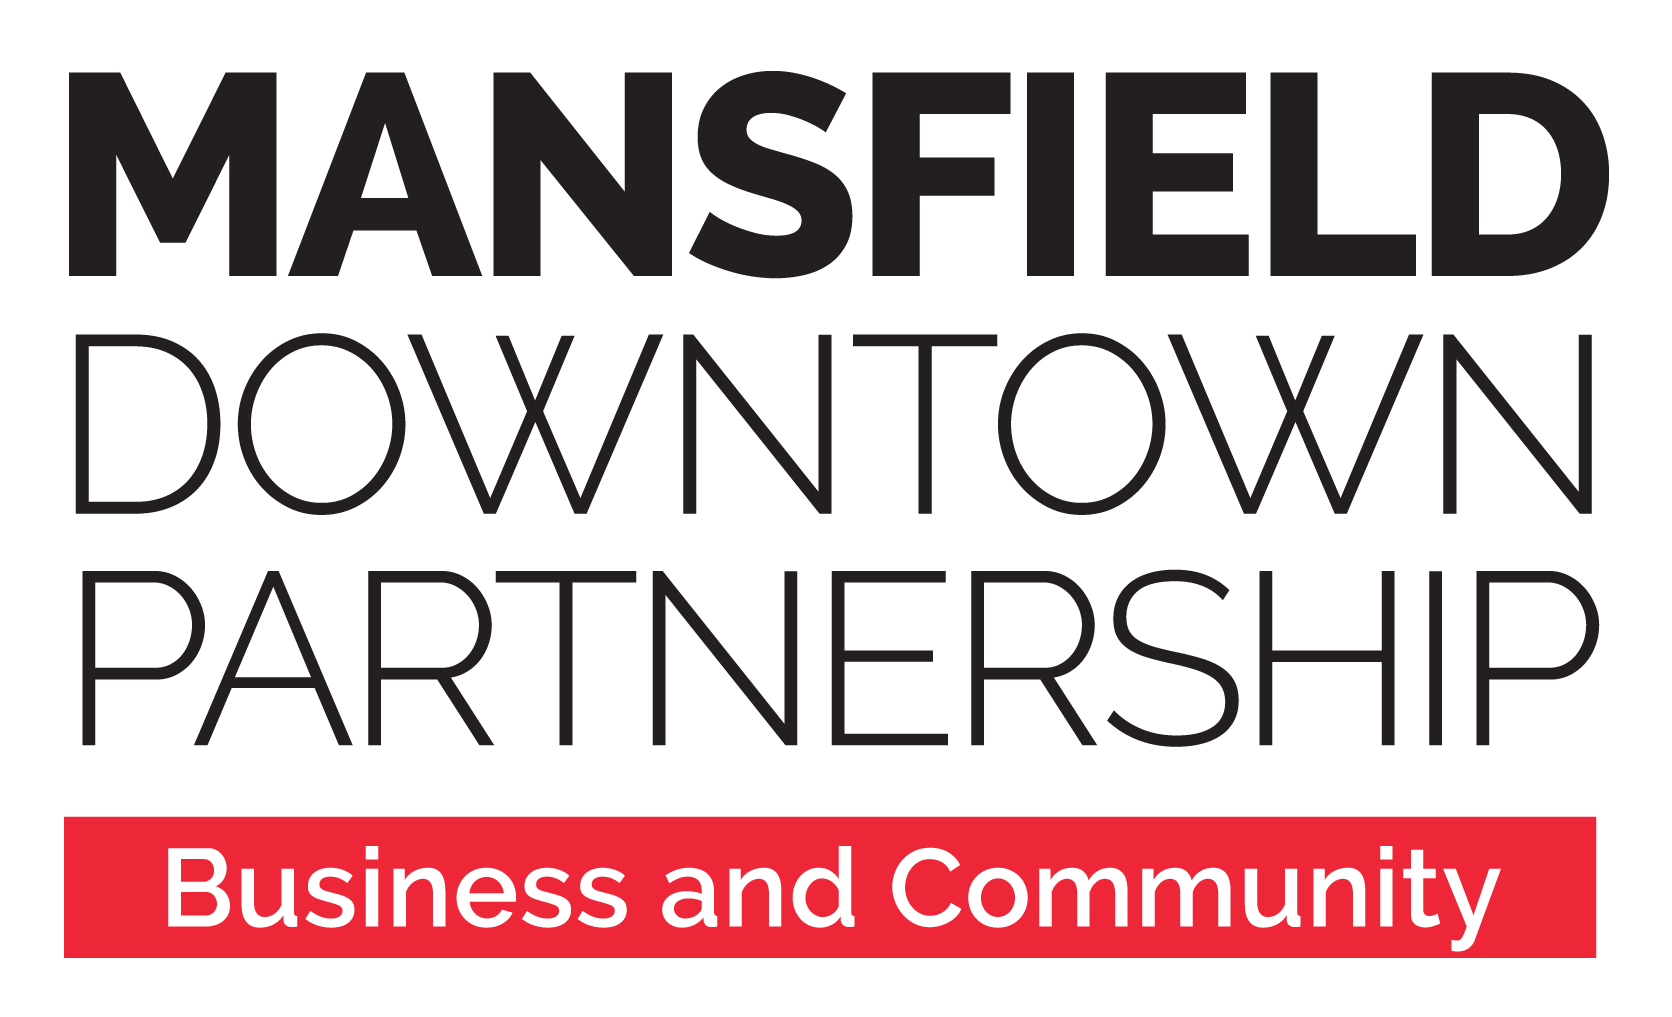 Mansfield Downtown Partnership Business and Community